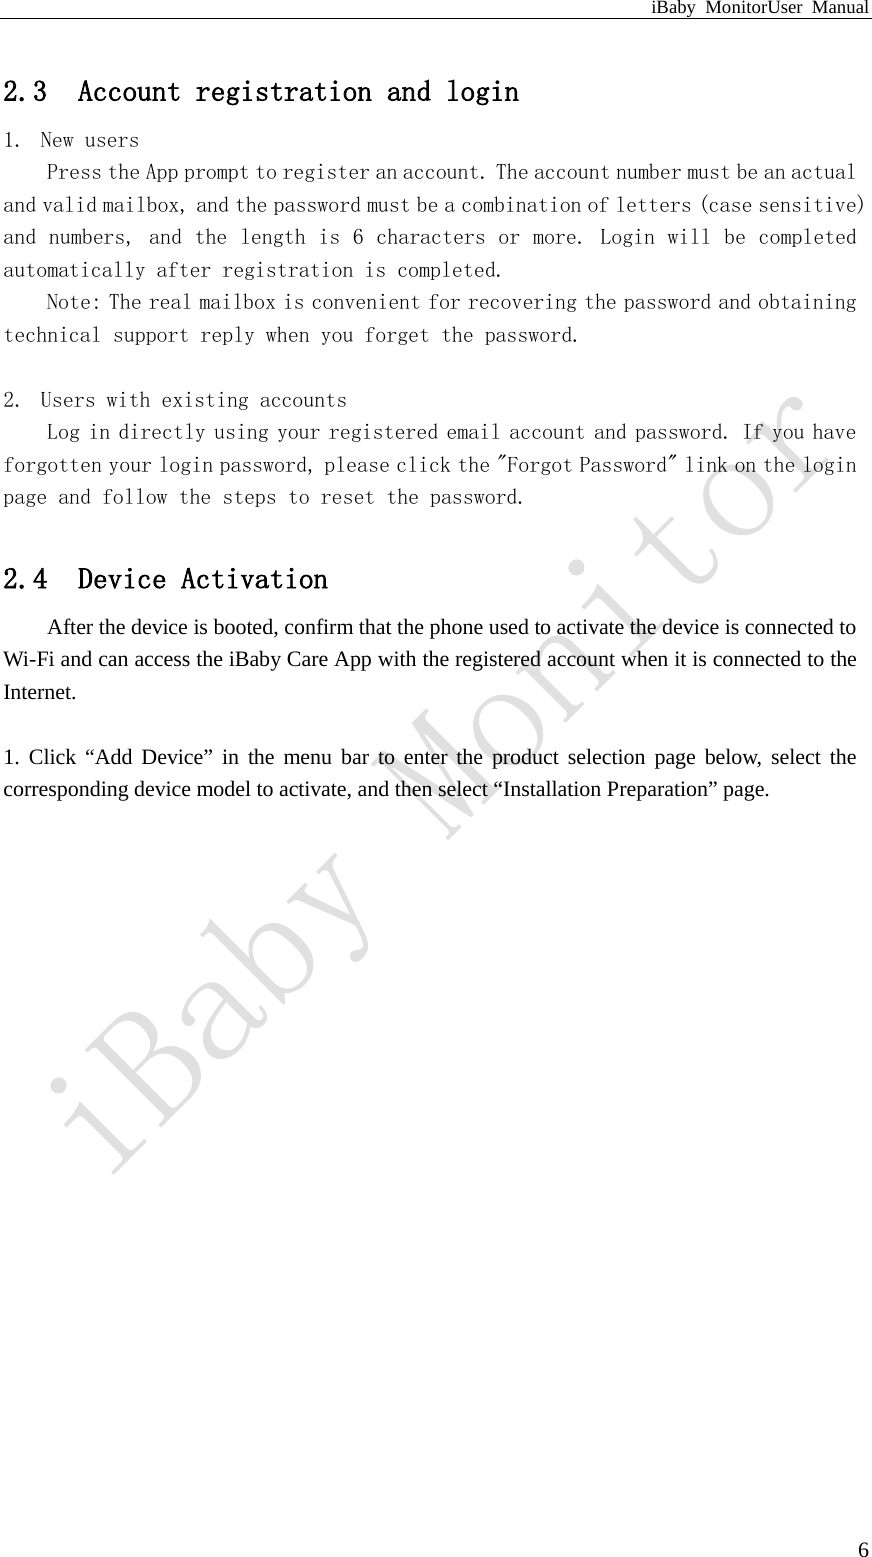 """iBaby MonitorUser Manual  6 2.3 Account registration and login 1. New users Press the App prompt to register an account. The account number must be an actual and valid mailbox, and the password must be a combination of letters (case sensitive) and numbers, and the length is 6 characters or more. Login will be completed automatically after registration is completed. Note: The real mailbox is convenient for recovering the password and obtaining technical support reply when you forget the password.  2. Users with existing accounts Log in directly using your registered email account and password. If you have forgotten your login password, please click the """"Forgot Password"""" link on the login page and follow the steps to reset the password.  2.4 Device Activation After the device is booted, confirm that the phone used to activate the device is connected to Wi-Fi and can access the iBaby Care App with the registered account when it is connected to the Internet.  1. Click """"Add Device"""" in the menu bar to enter the product selection page below, select the corresponding device model to activate, and then select """"Installation Preparation"""" page."""